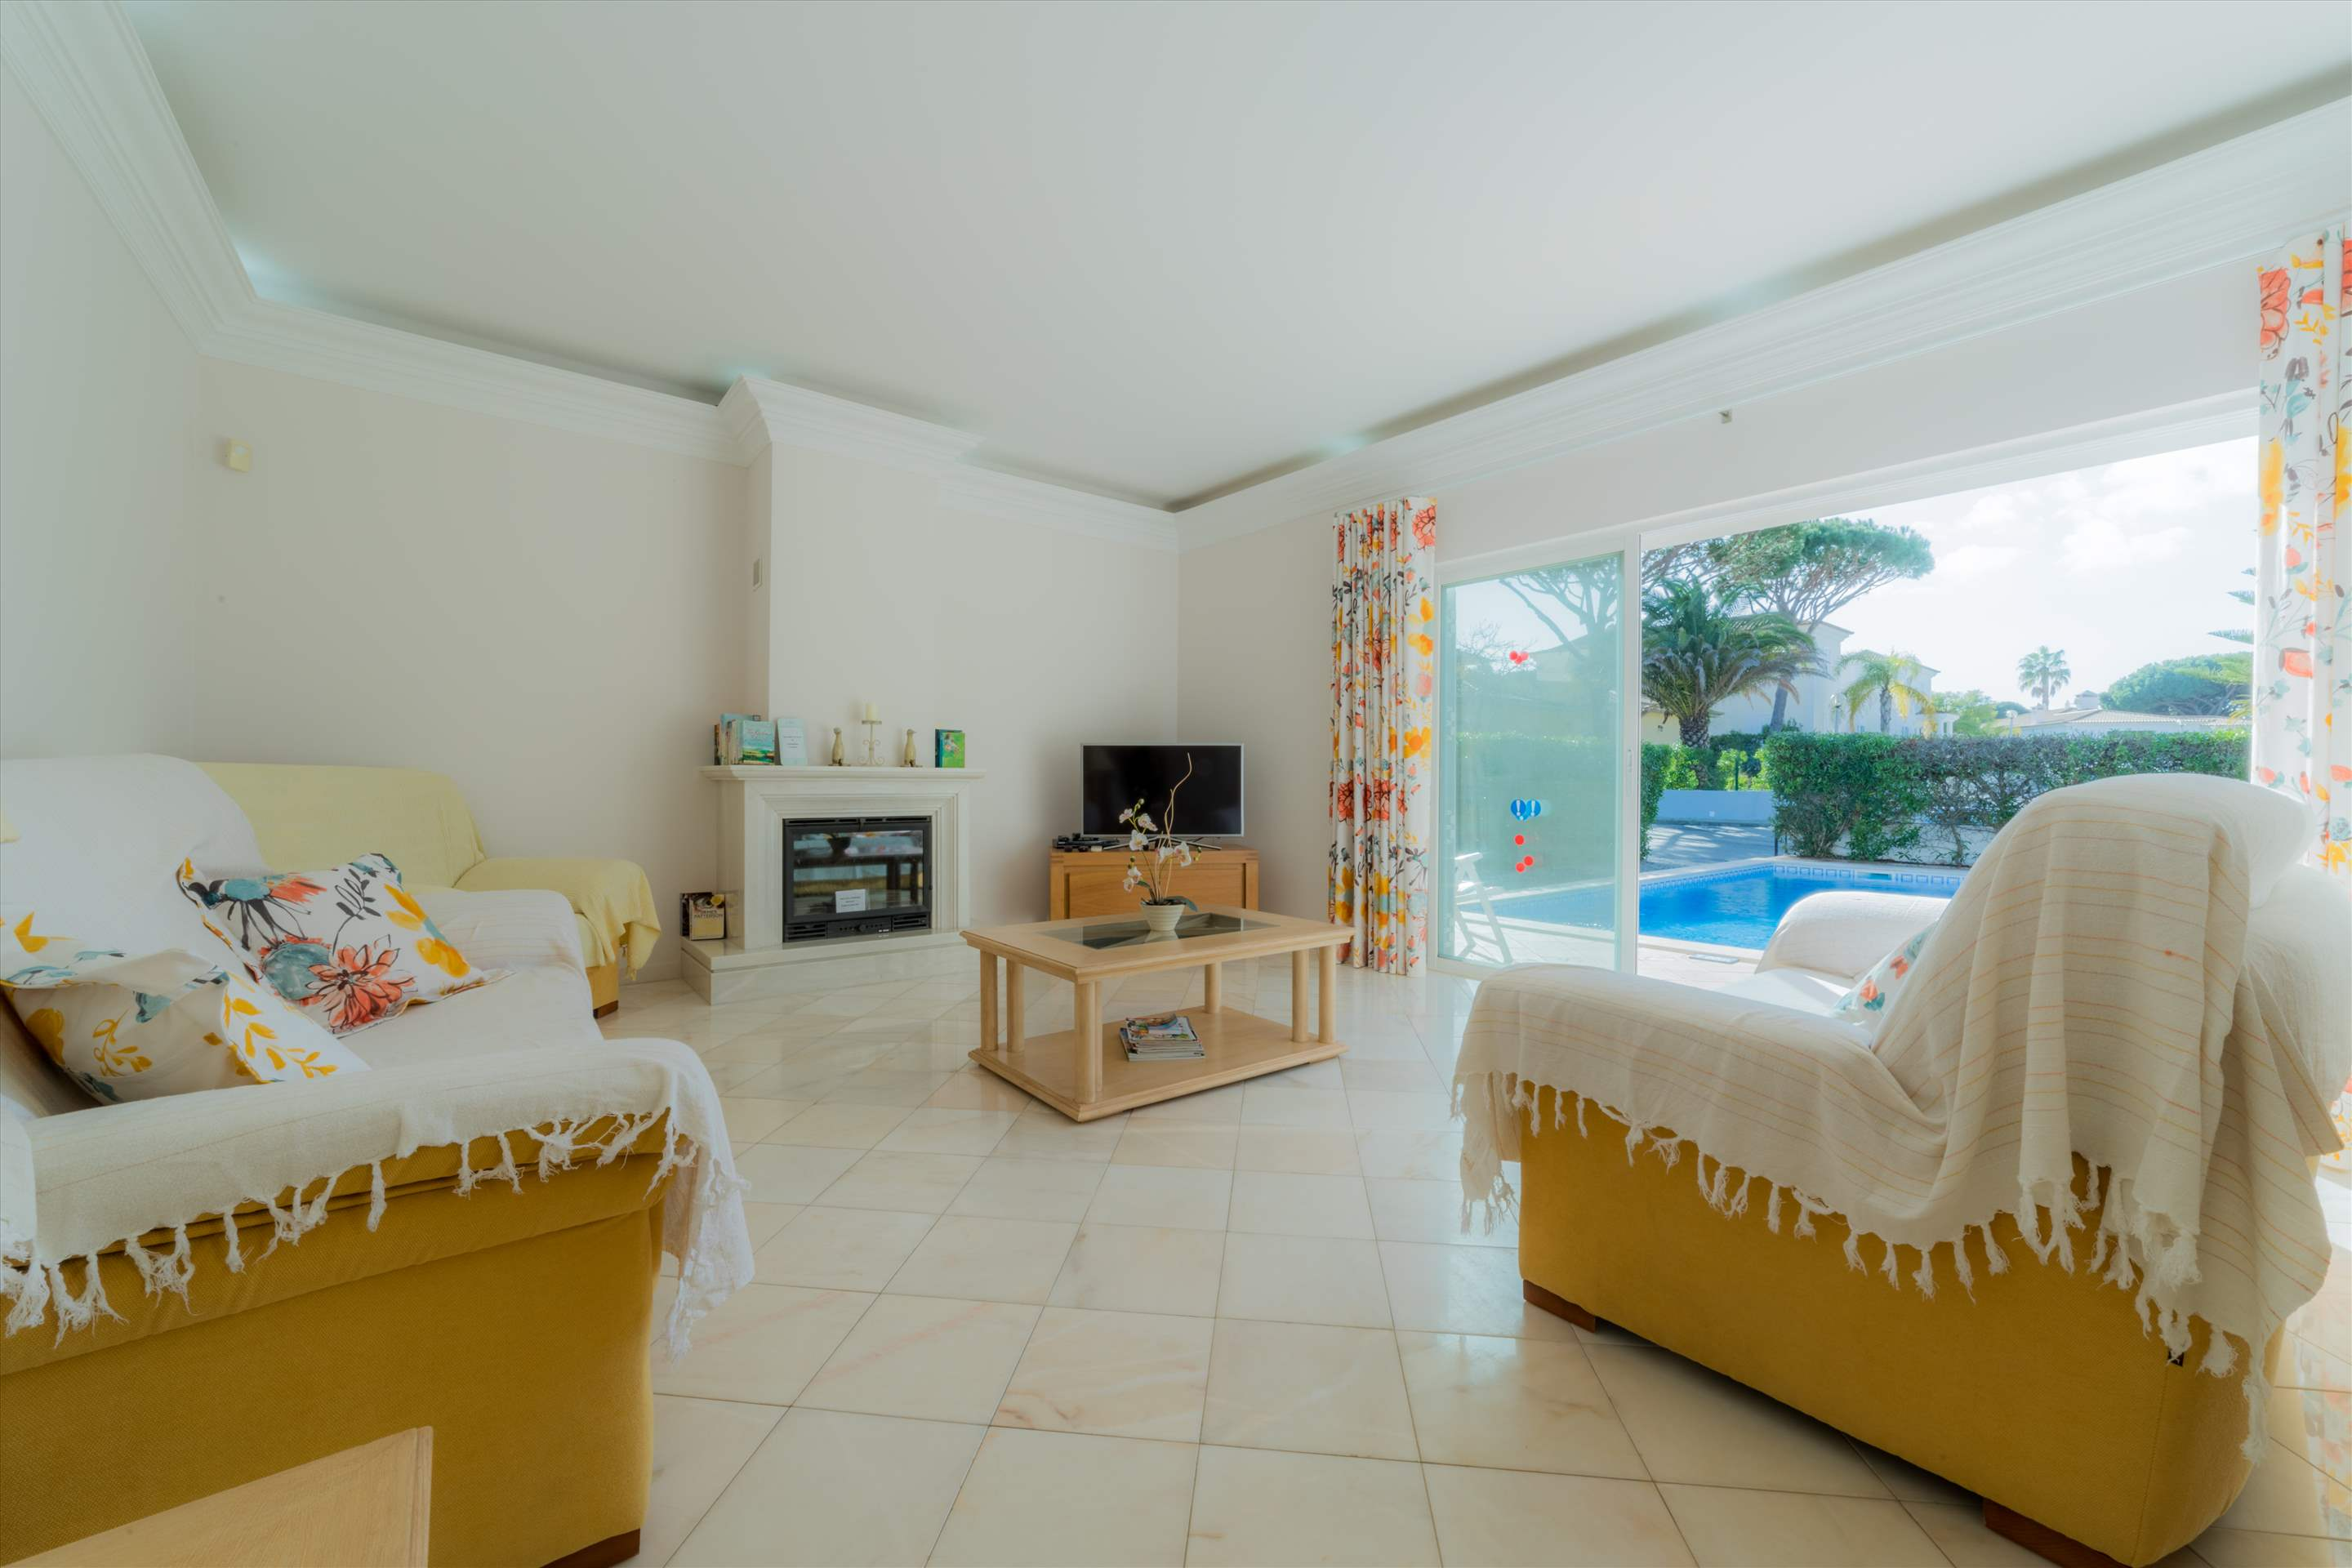 Villa 29, 4 bedroom villa in Vale do Lobo, Algarve Photo #5